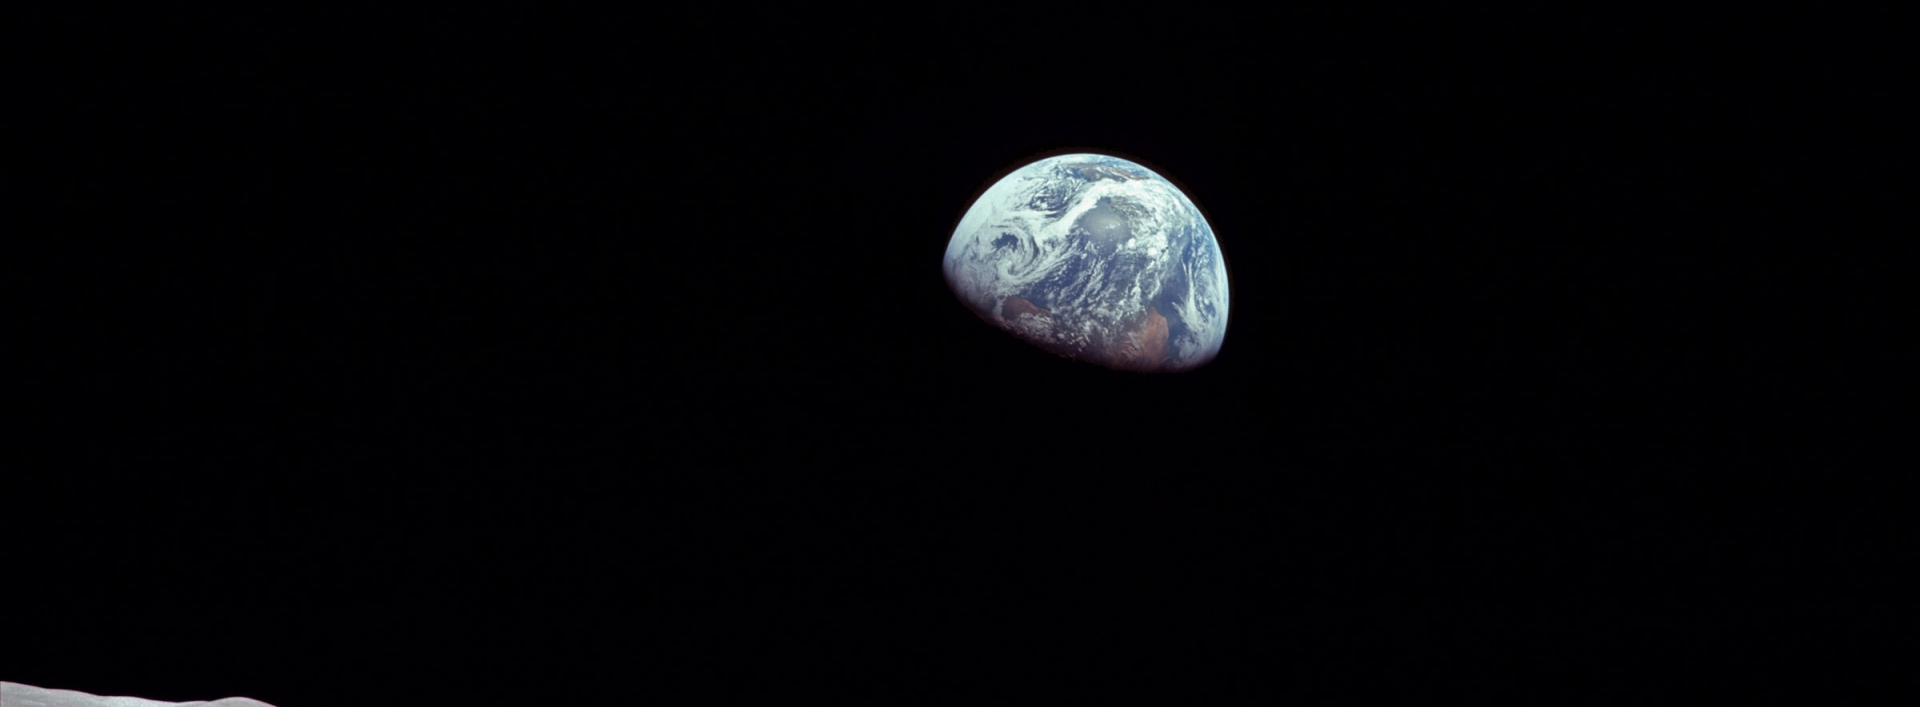 Earth rising over the moon from space